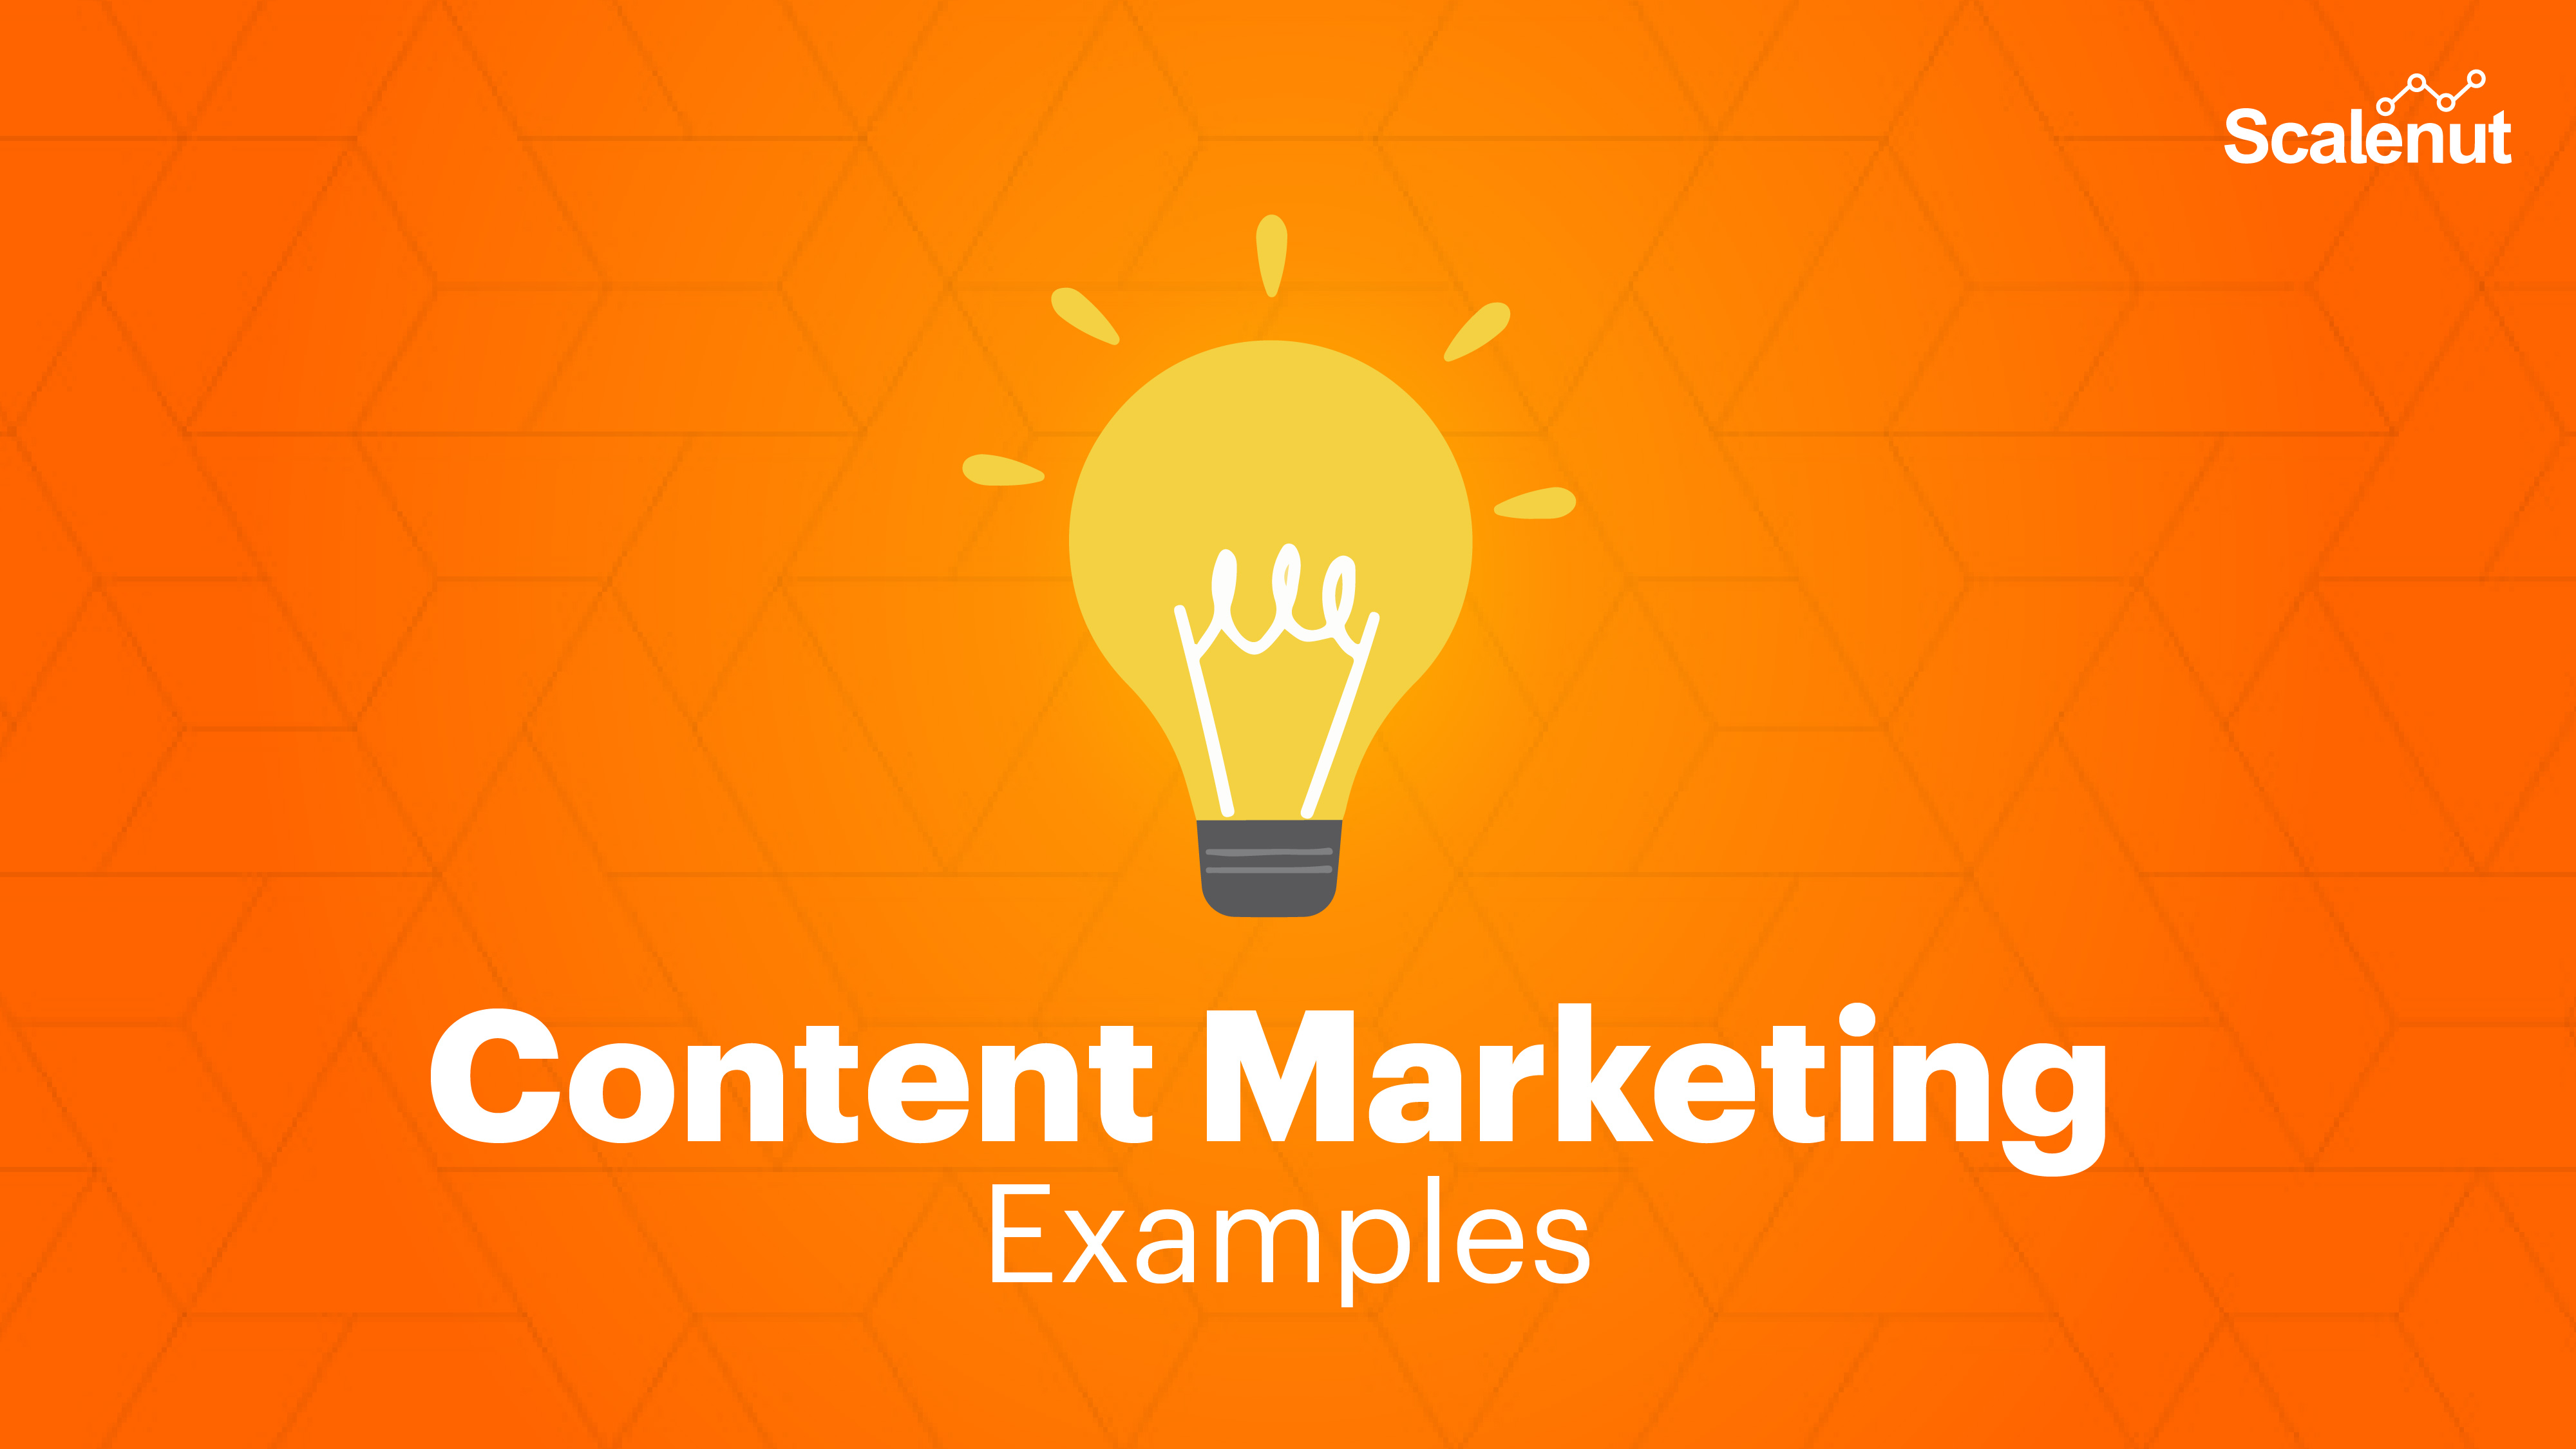 Content Marketing Examples From 2021 That You'll Find Worth Reading